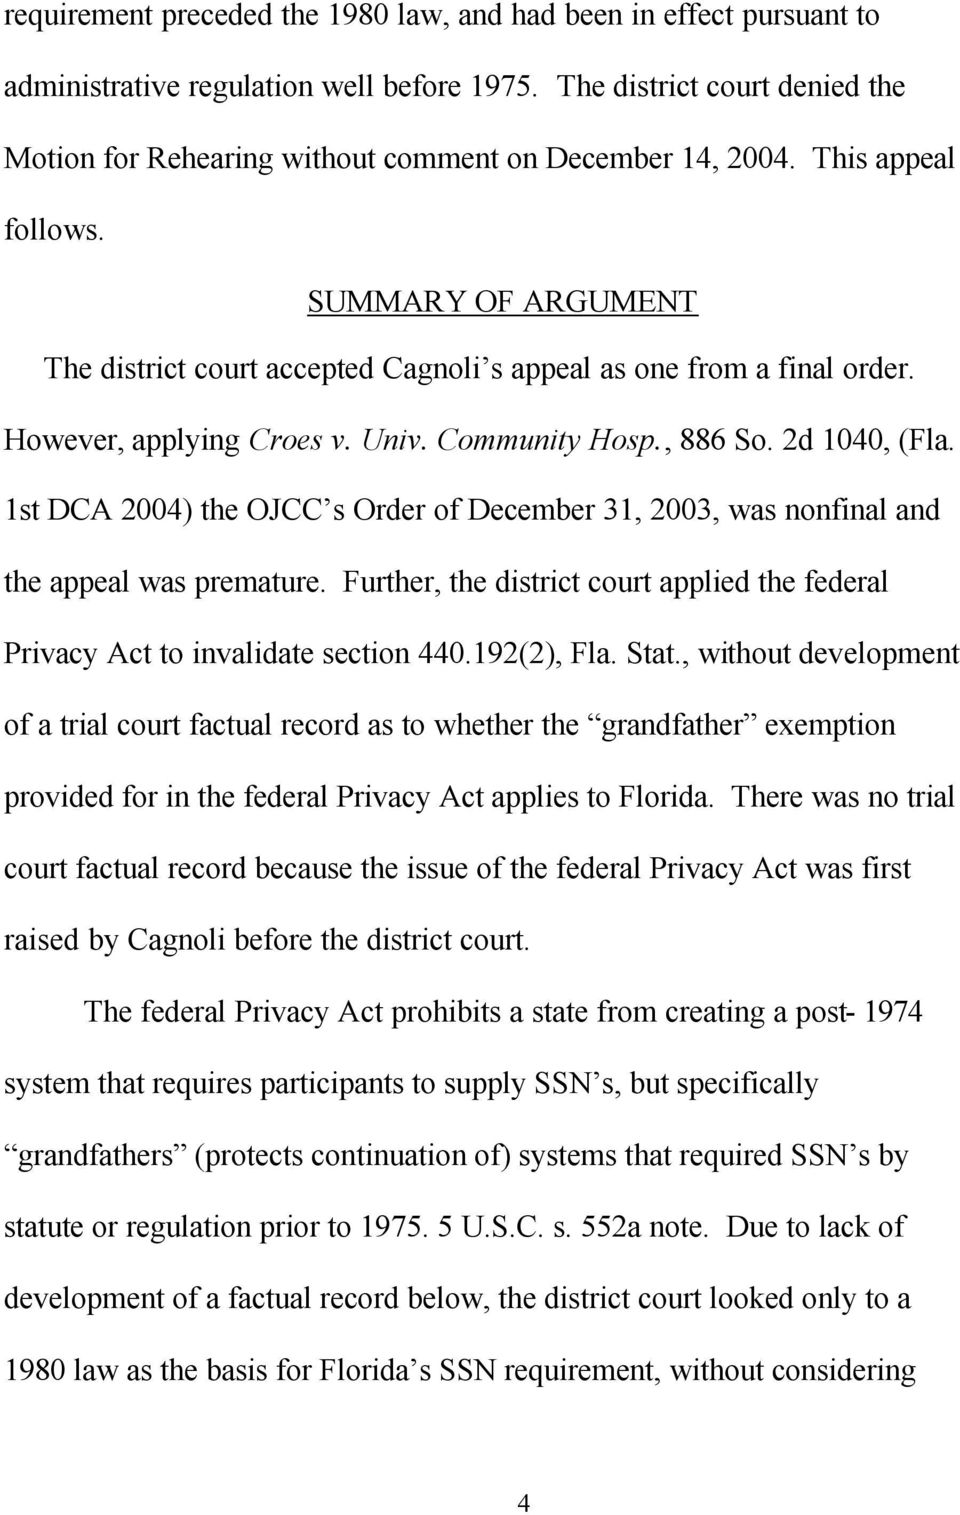 SUMMARY OF ARGUMENT The district court accepted Cagnoli s appeal as one from a final order. However, applying Croes v. Univ. Community Hosp., 886 So. 2d 1040, (Fla.